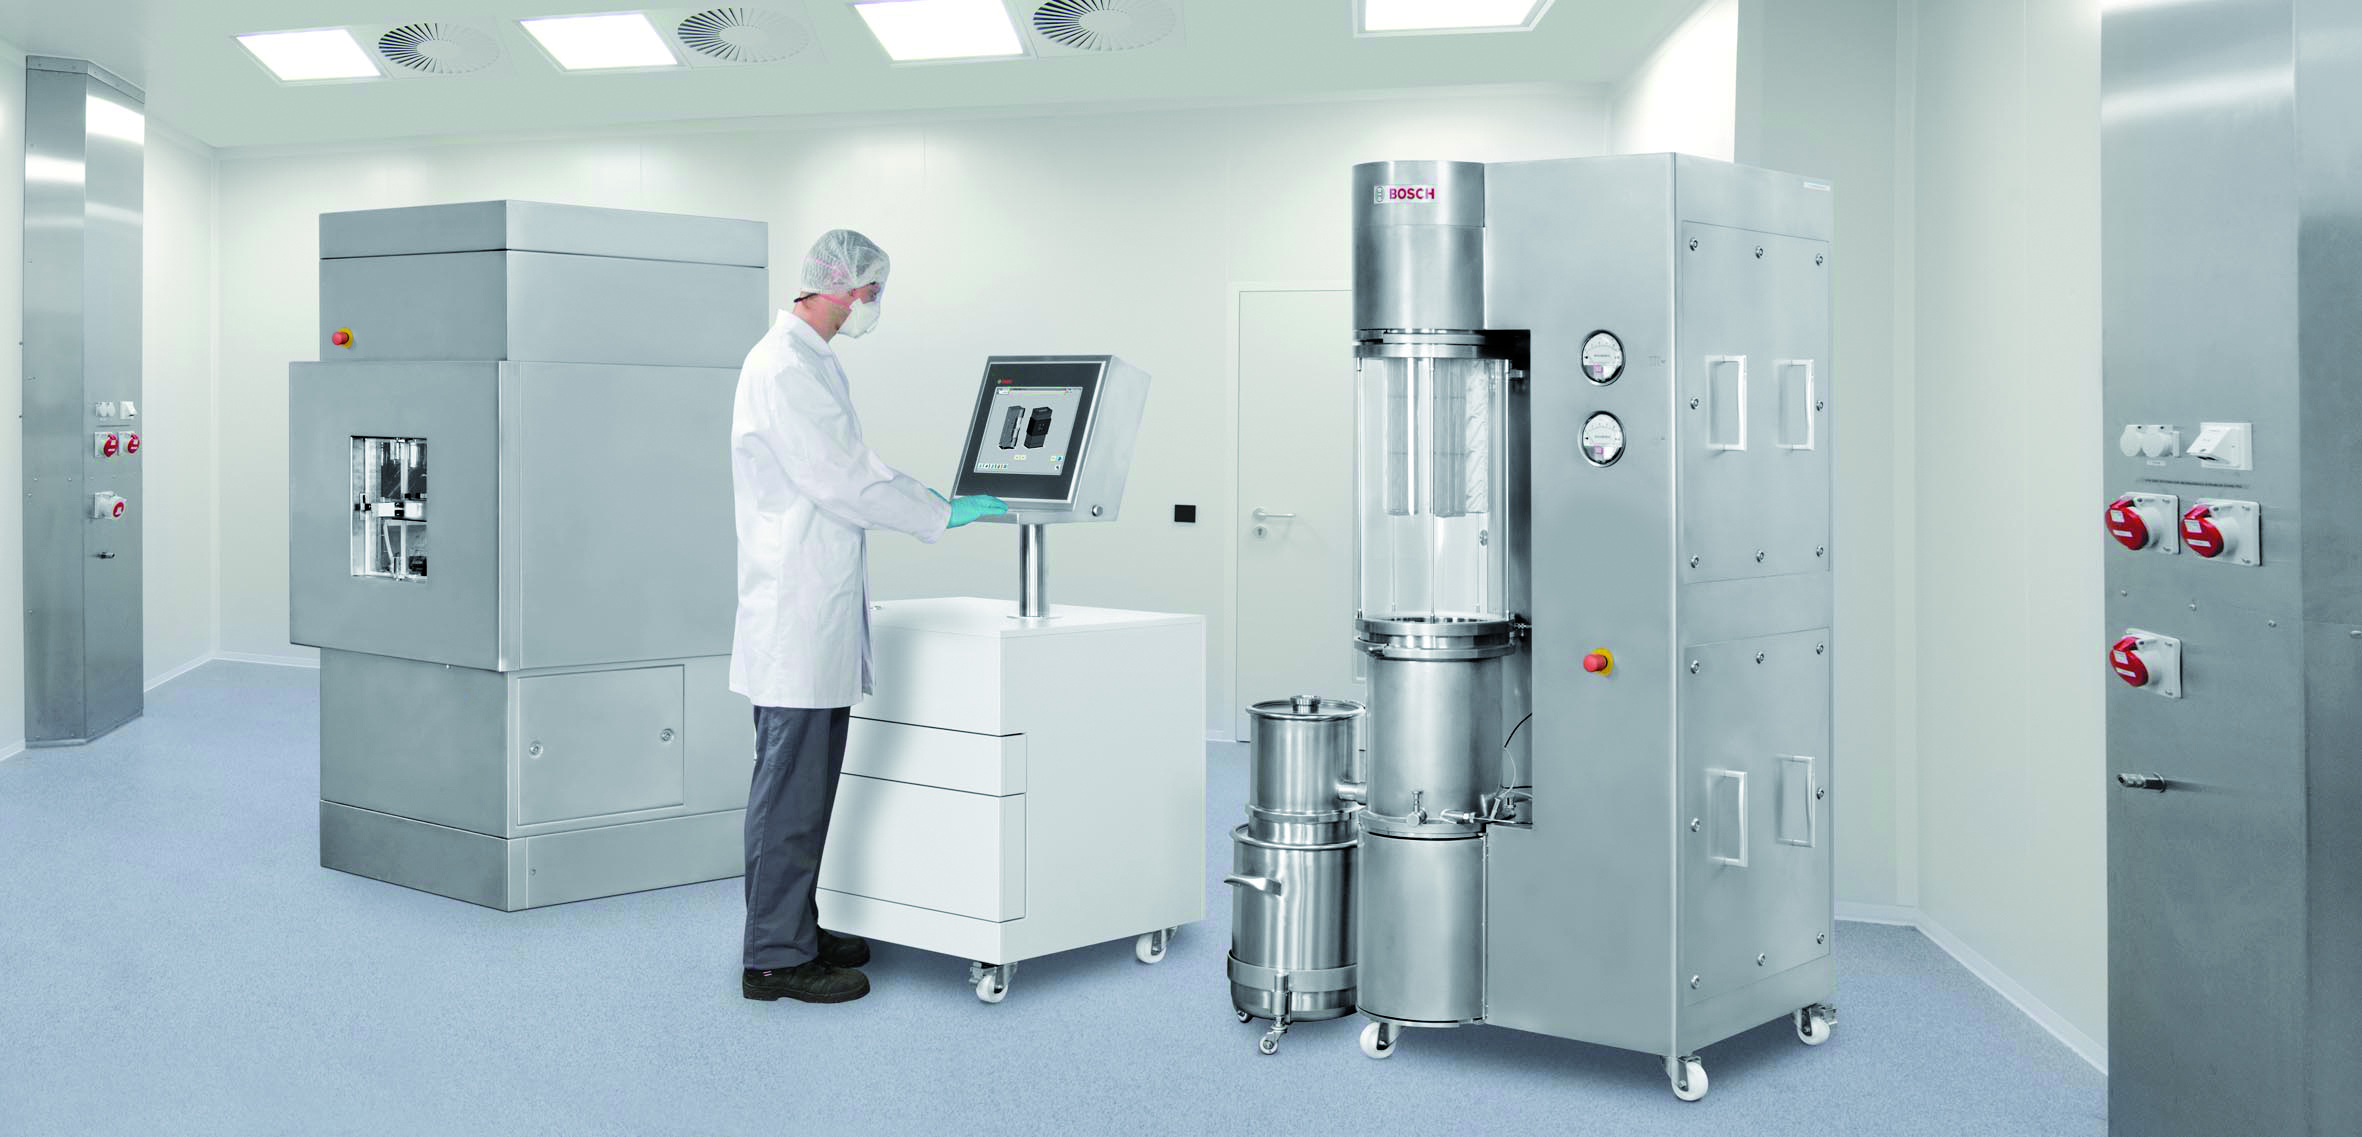 Bosch Packaging Technology Presents Laboratory Devices for Process Technology